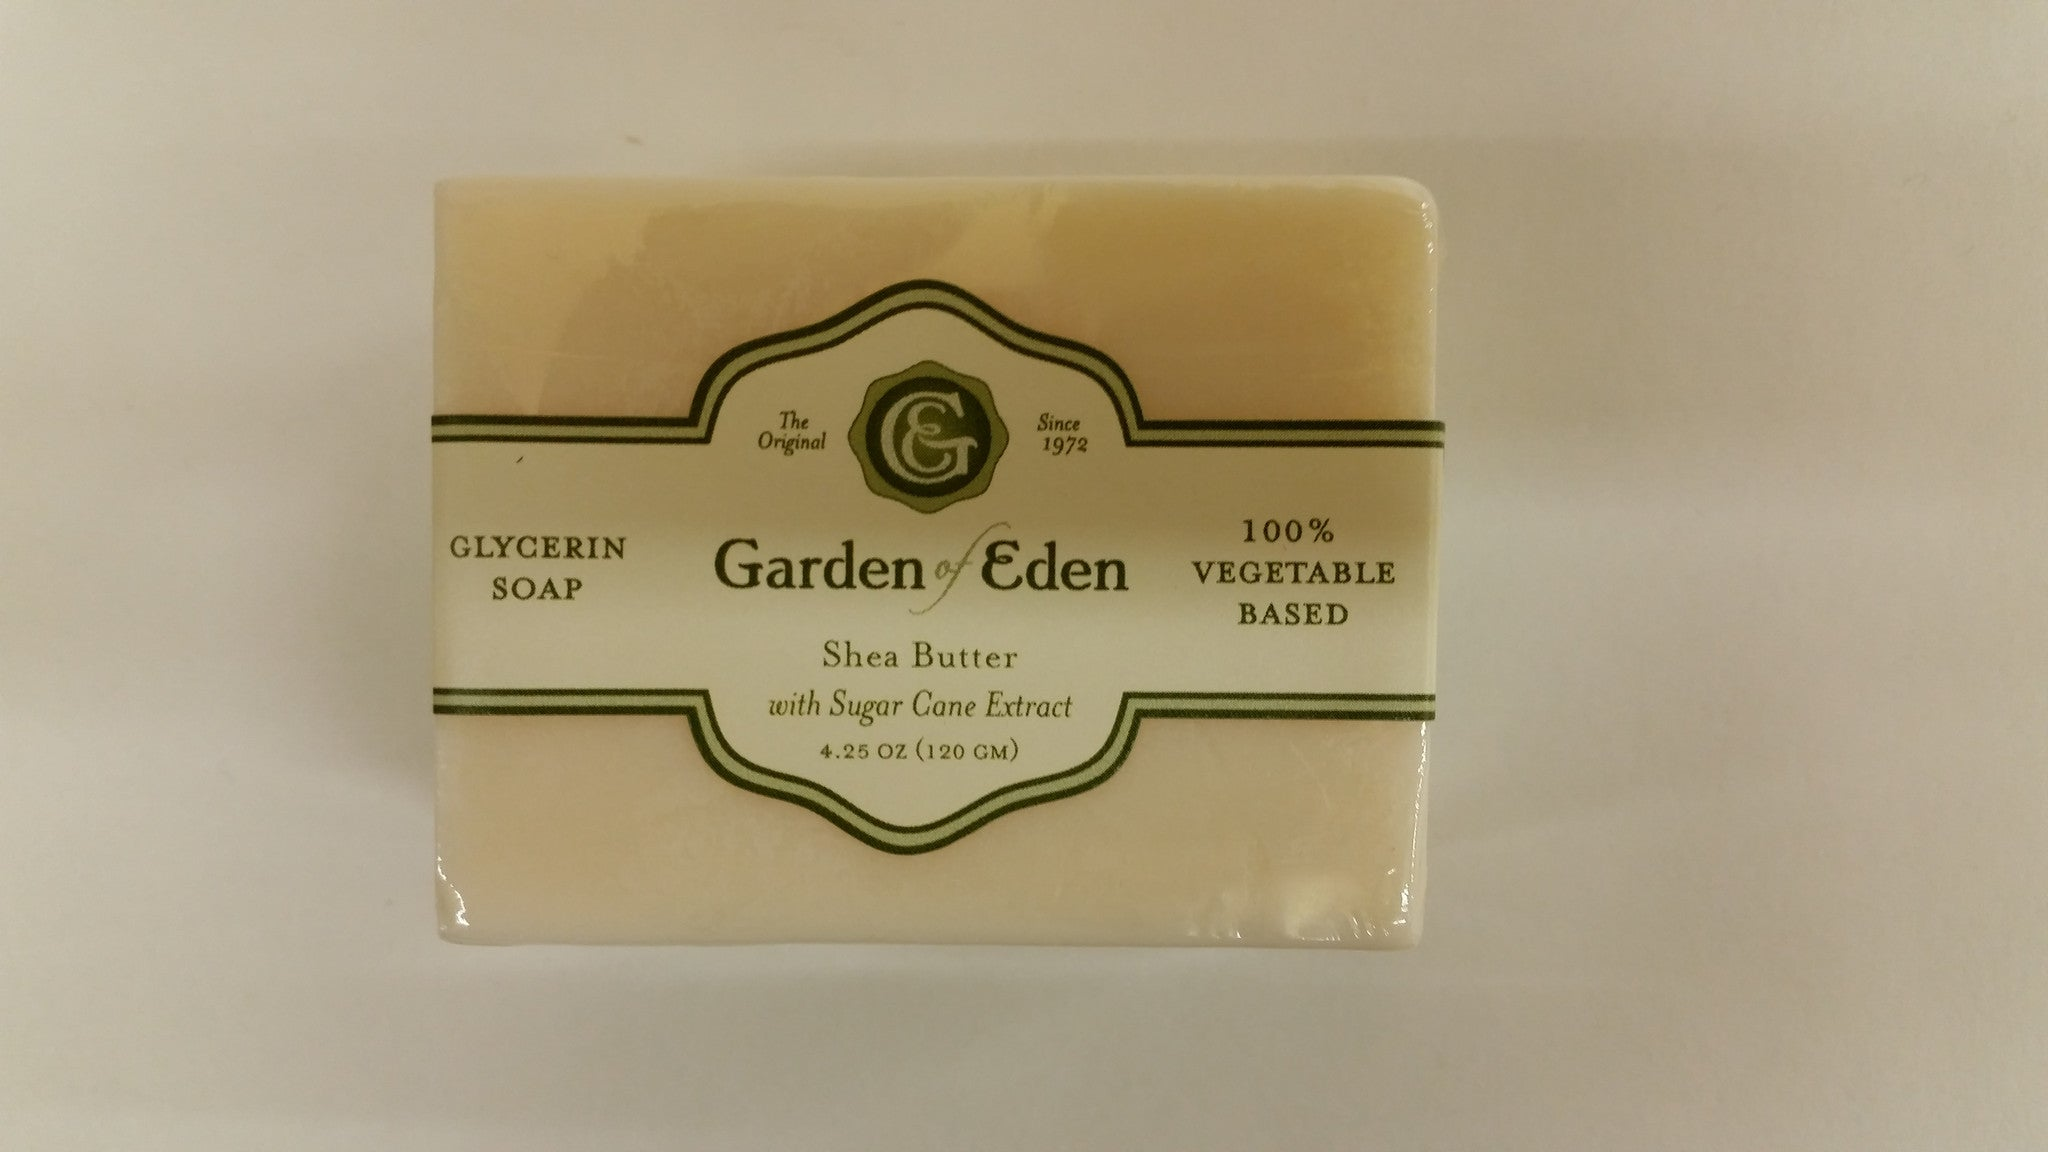 Garden of Eden Glycerin Soap - Shea Butter with Sugar Cane Extract Bar